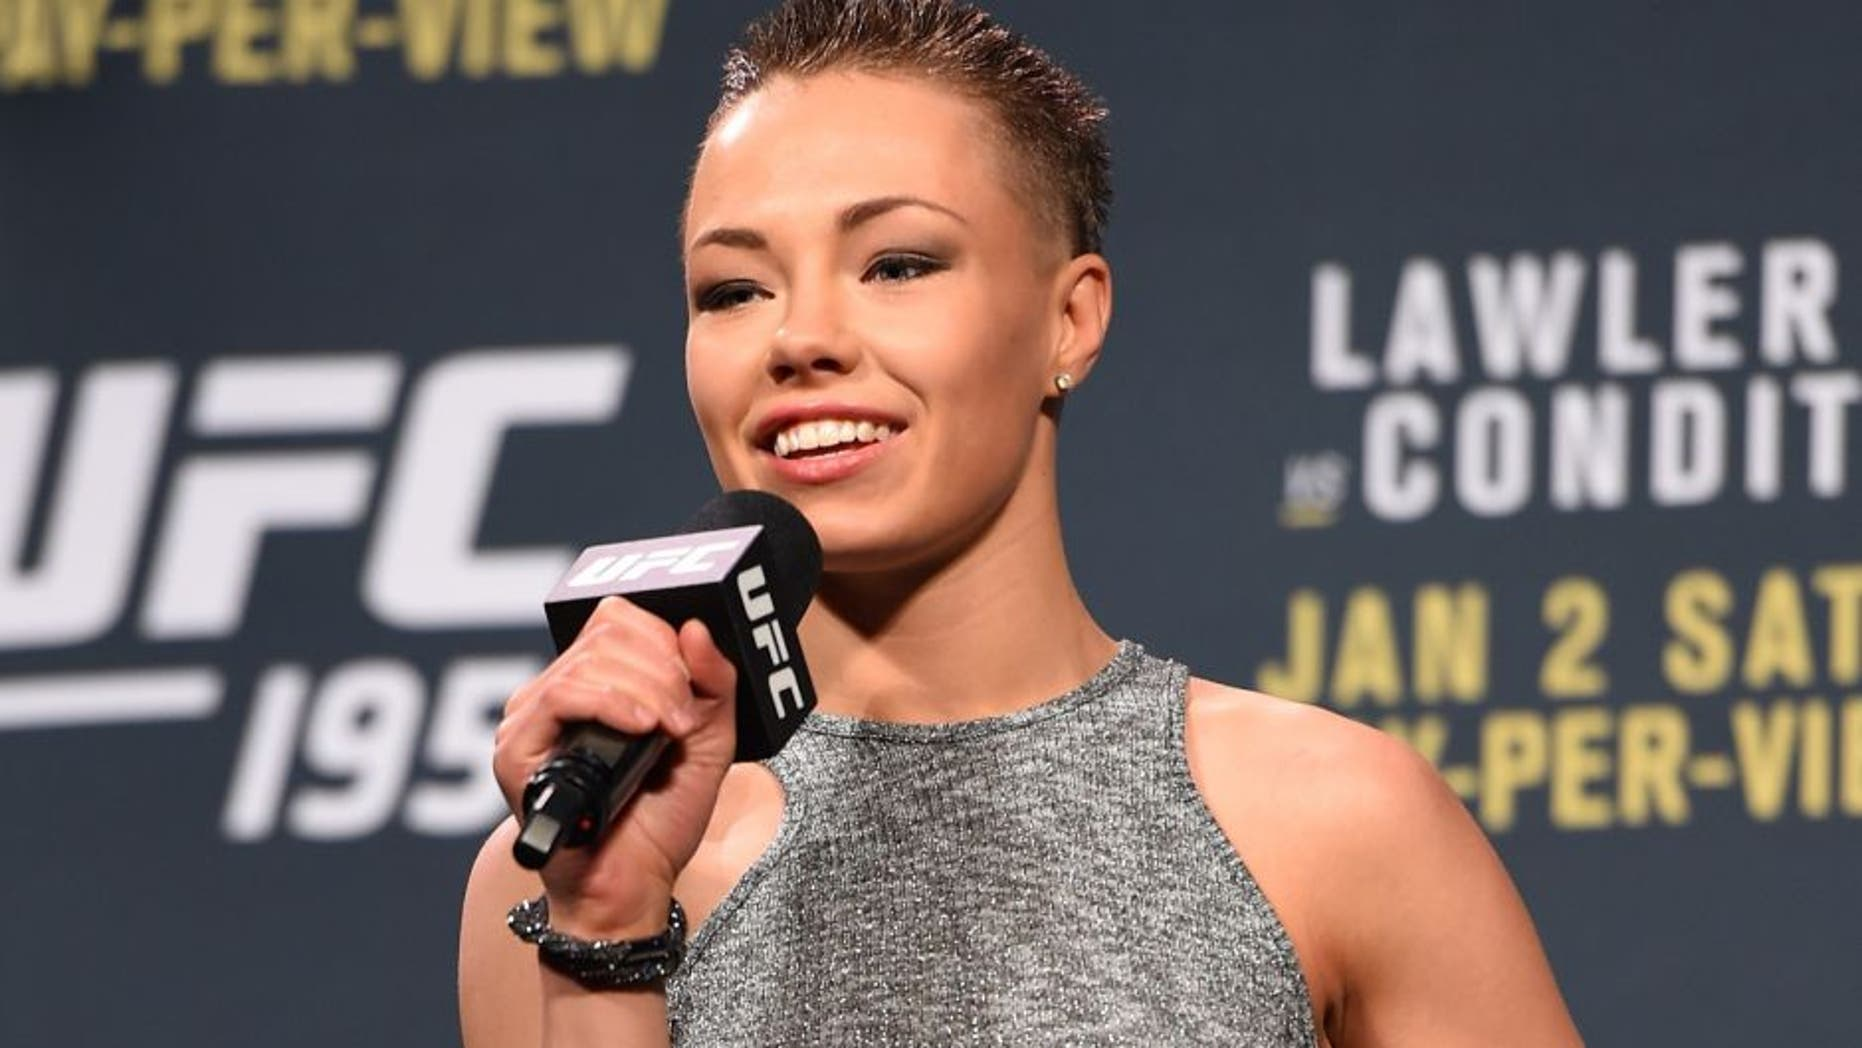 rose namajunas - photo #5